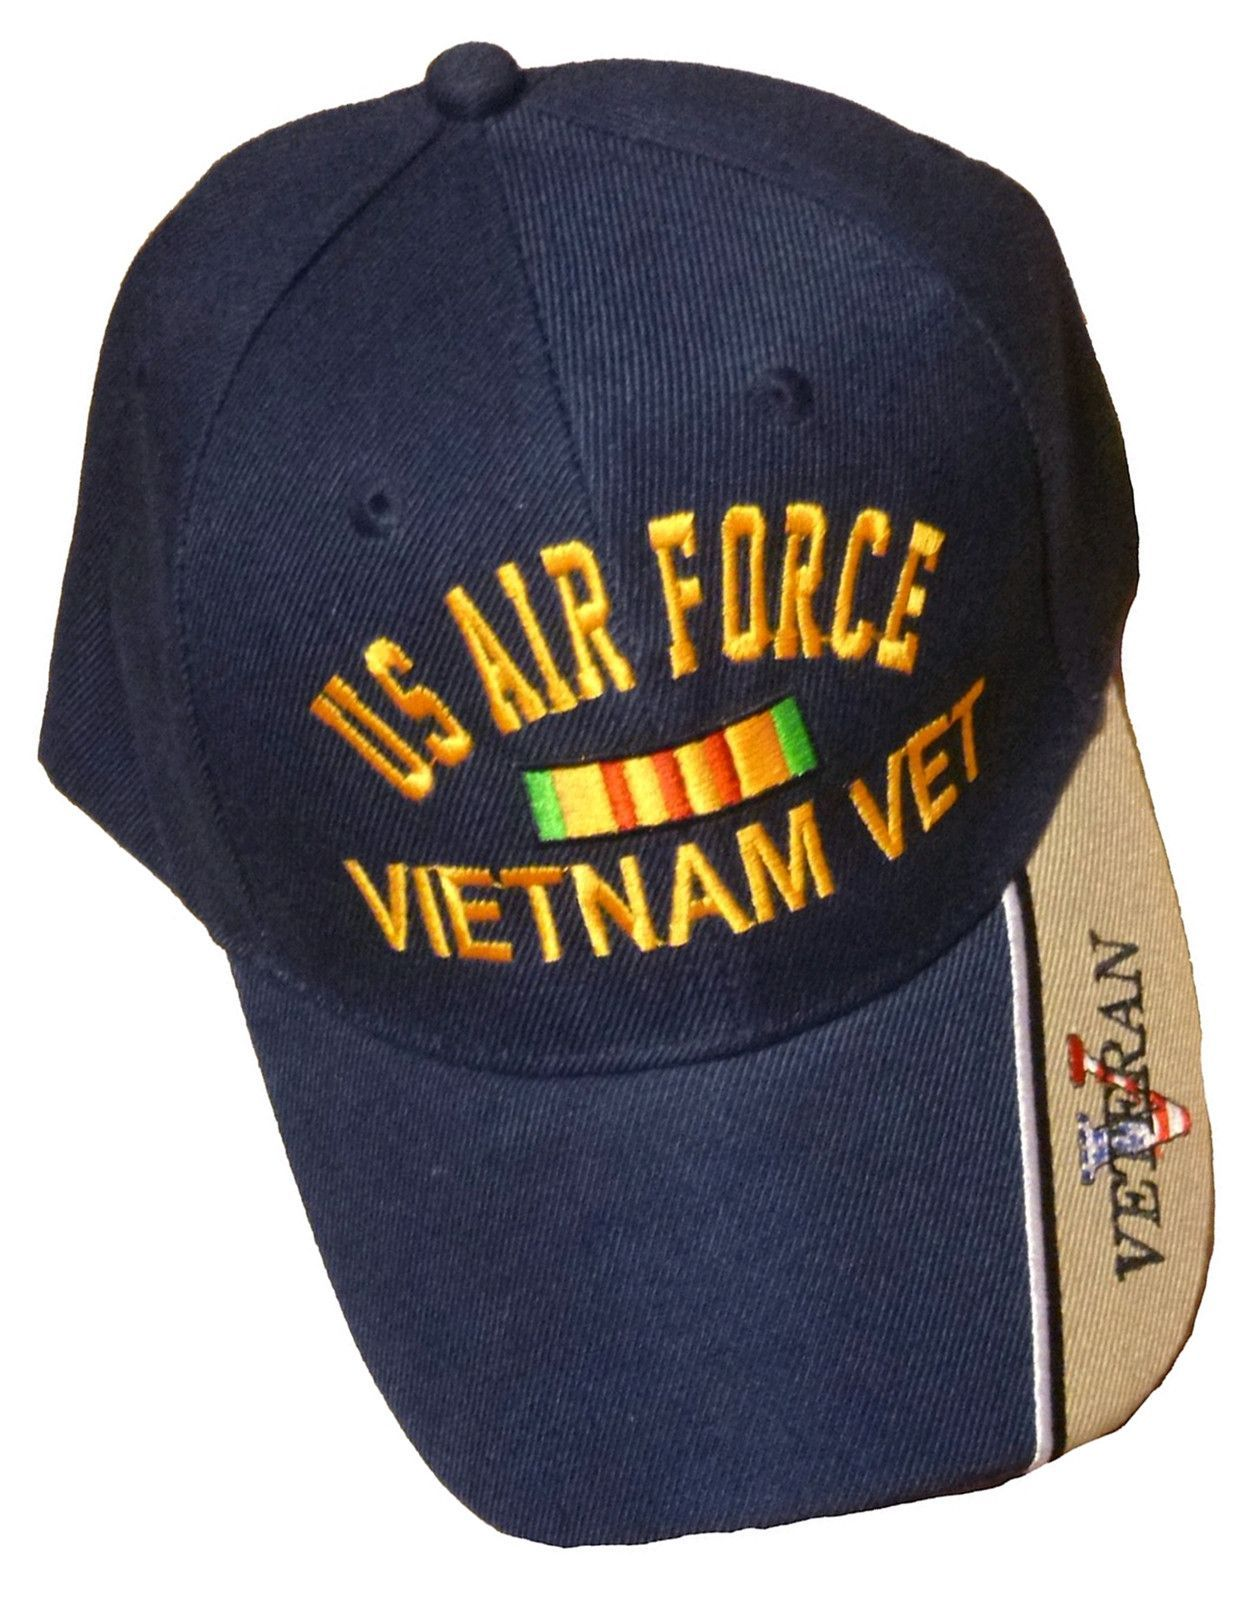 7eef5adb689 US Air Force Vietnam Vet Baseball Cap Blue and Tan Embroidered Military  Logo Veteran Hat